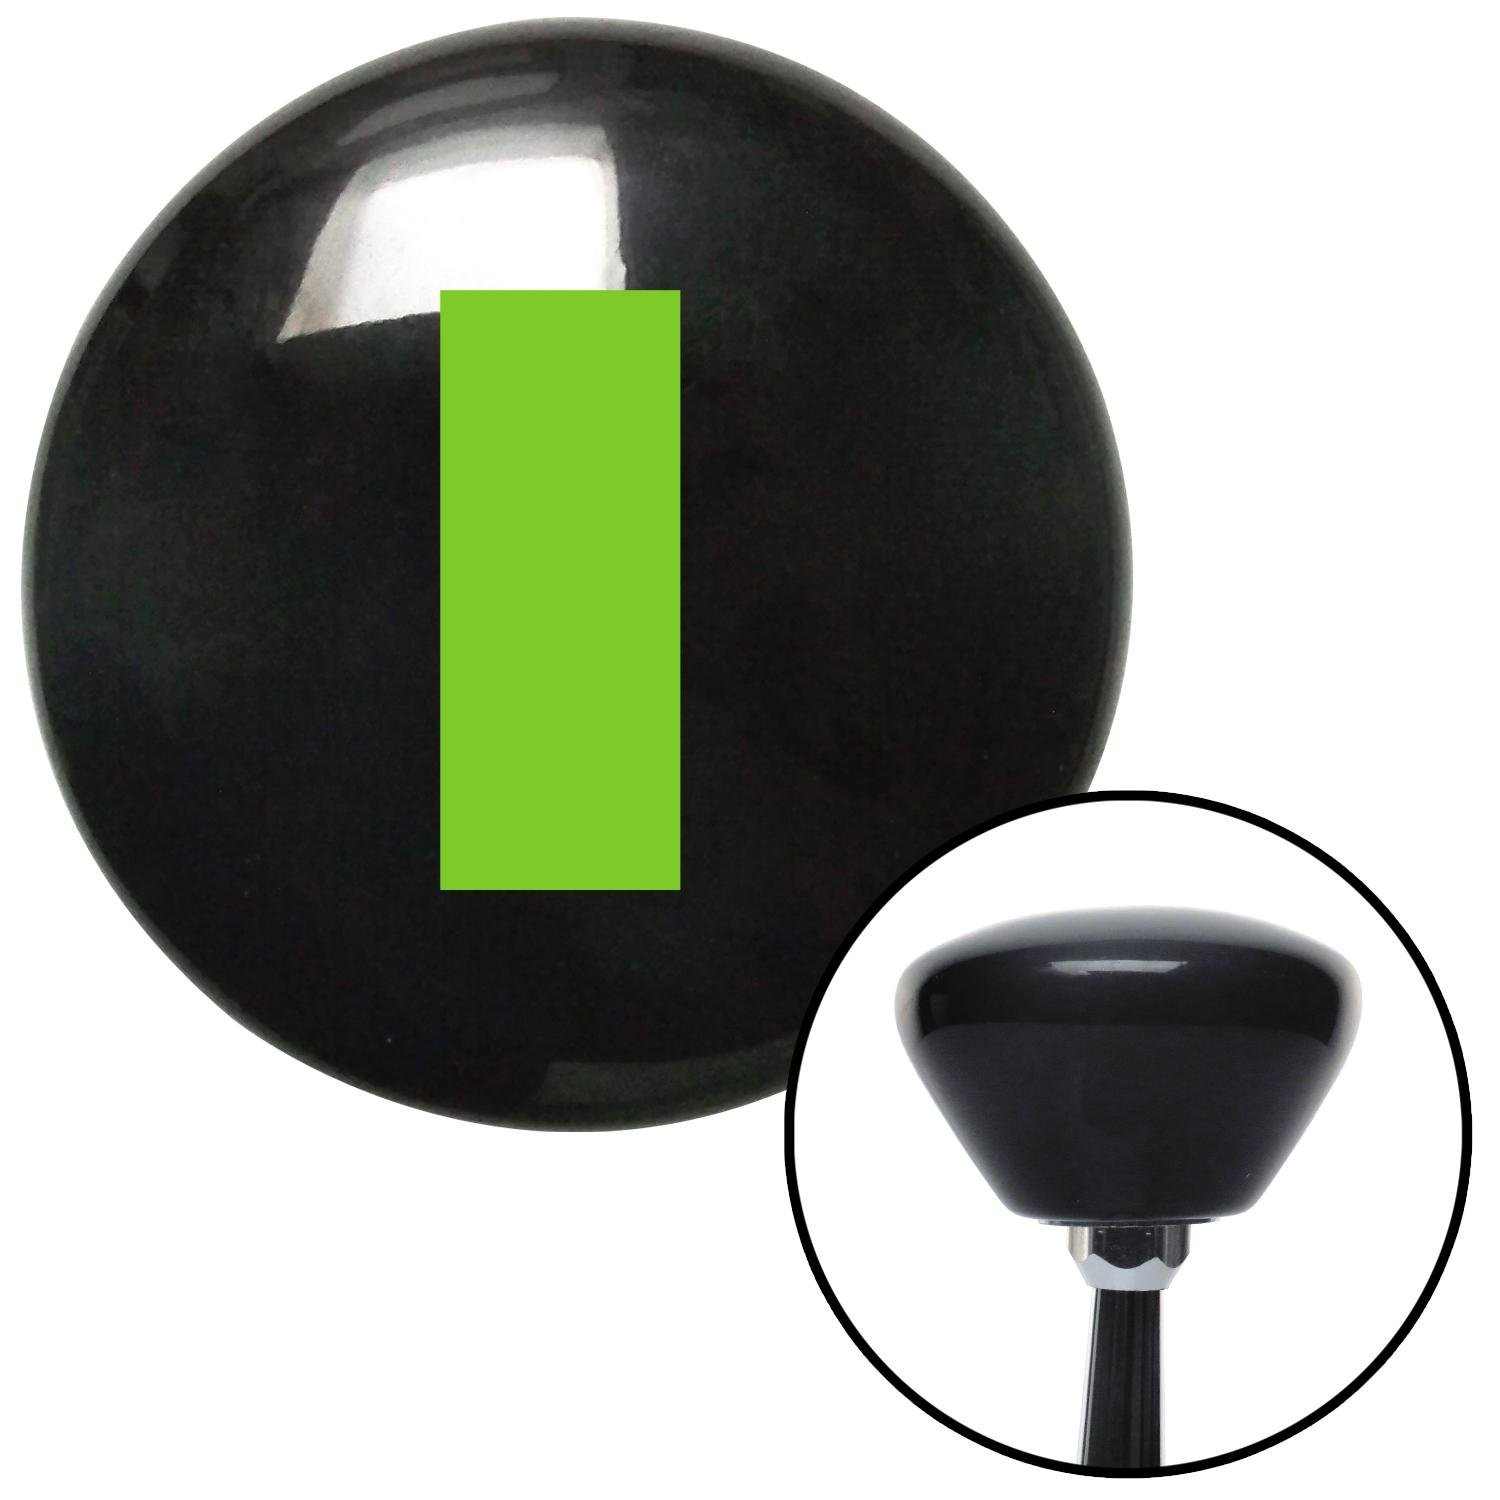 Green Officer 01-2n Lt. and 1d Lt. American Shifter 146362 Black Retro Shift Knob with M16 x 1.5 Insert